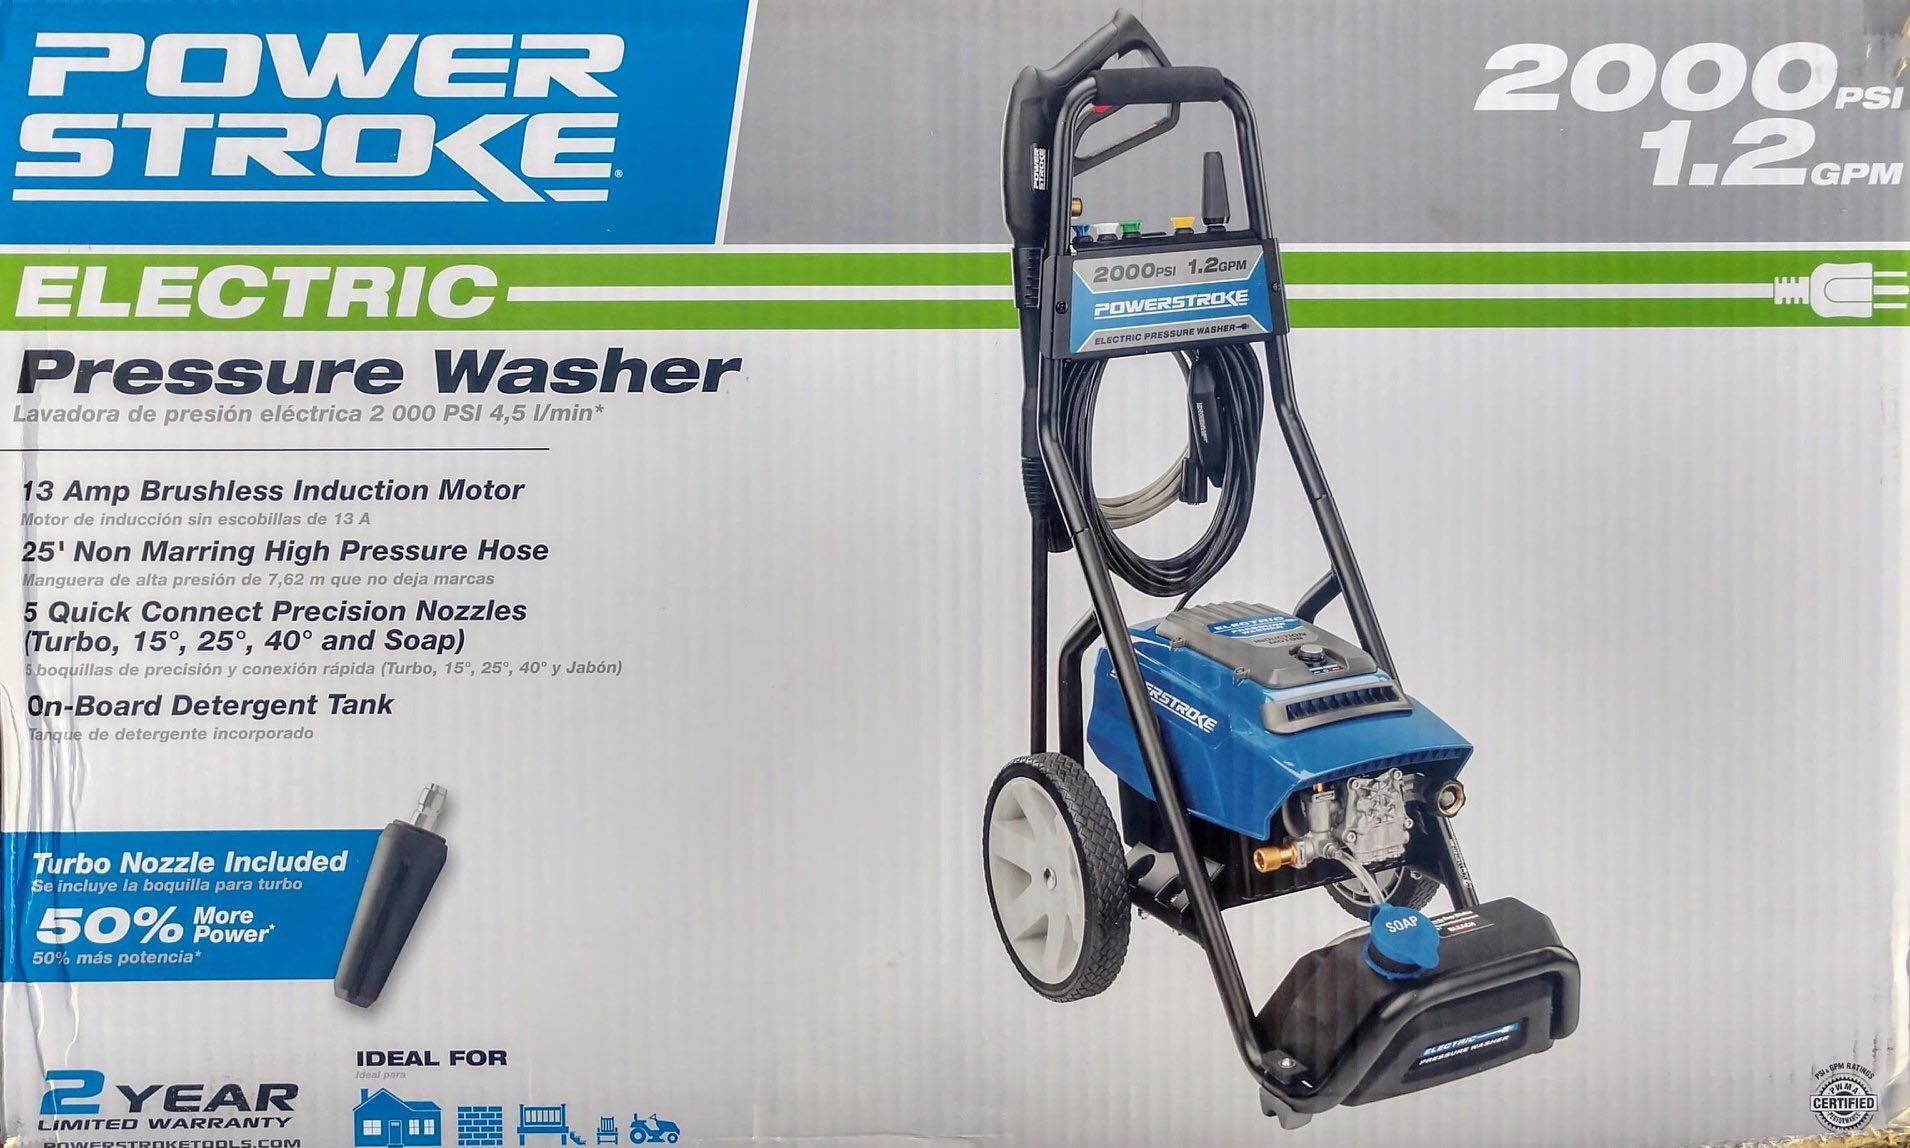 New electric Powerstroke pressure washer - 2000 PSI